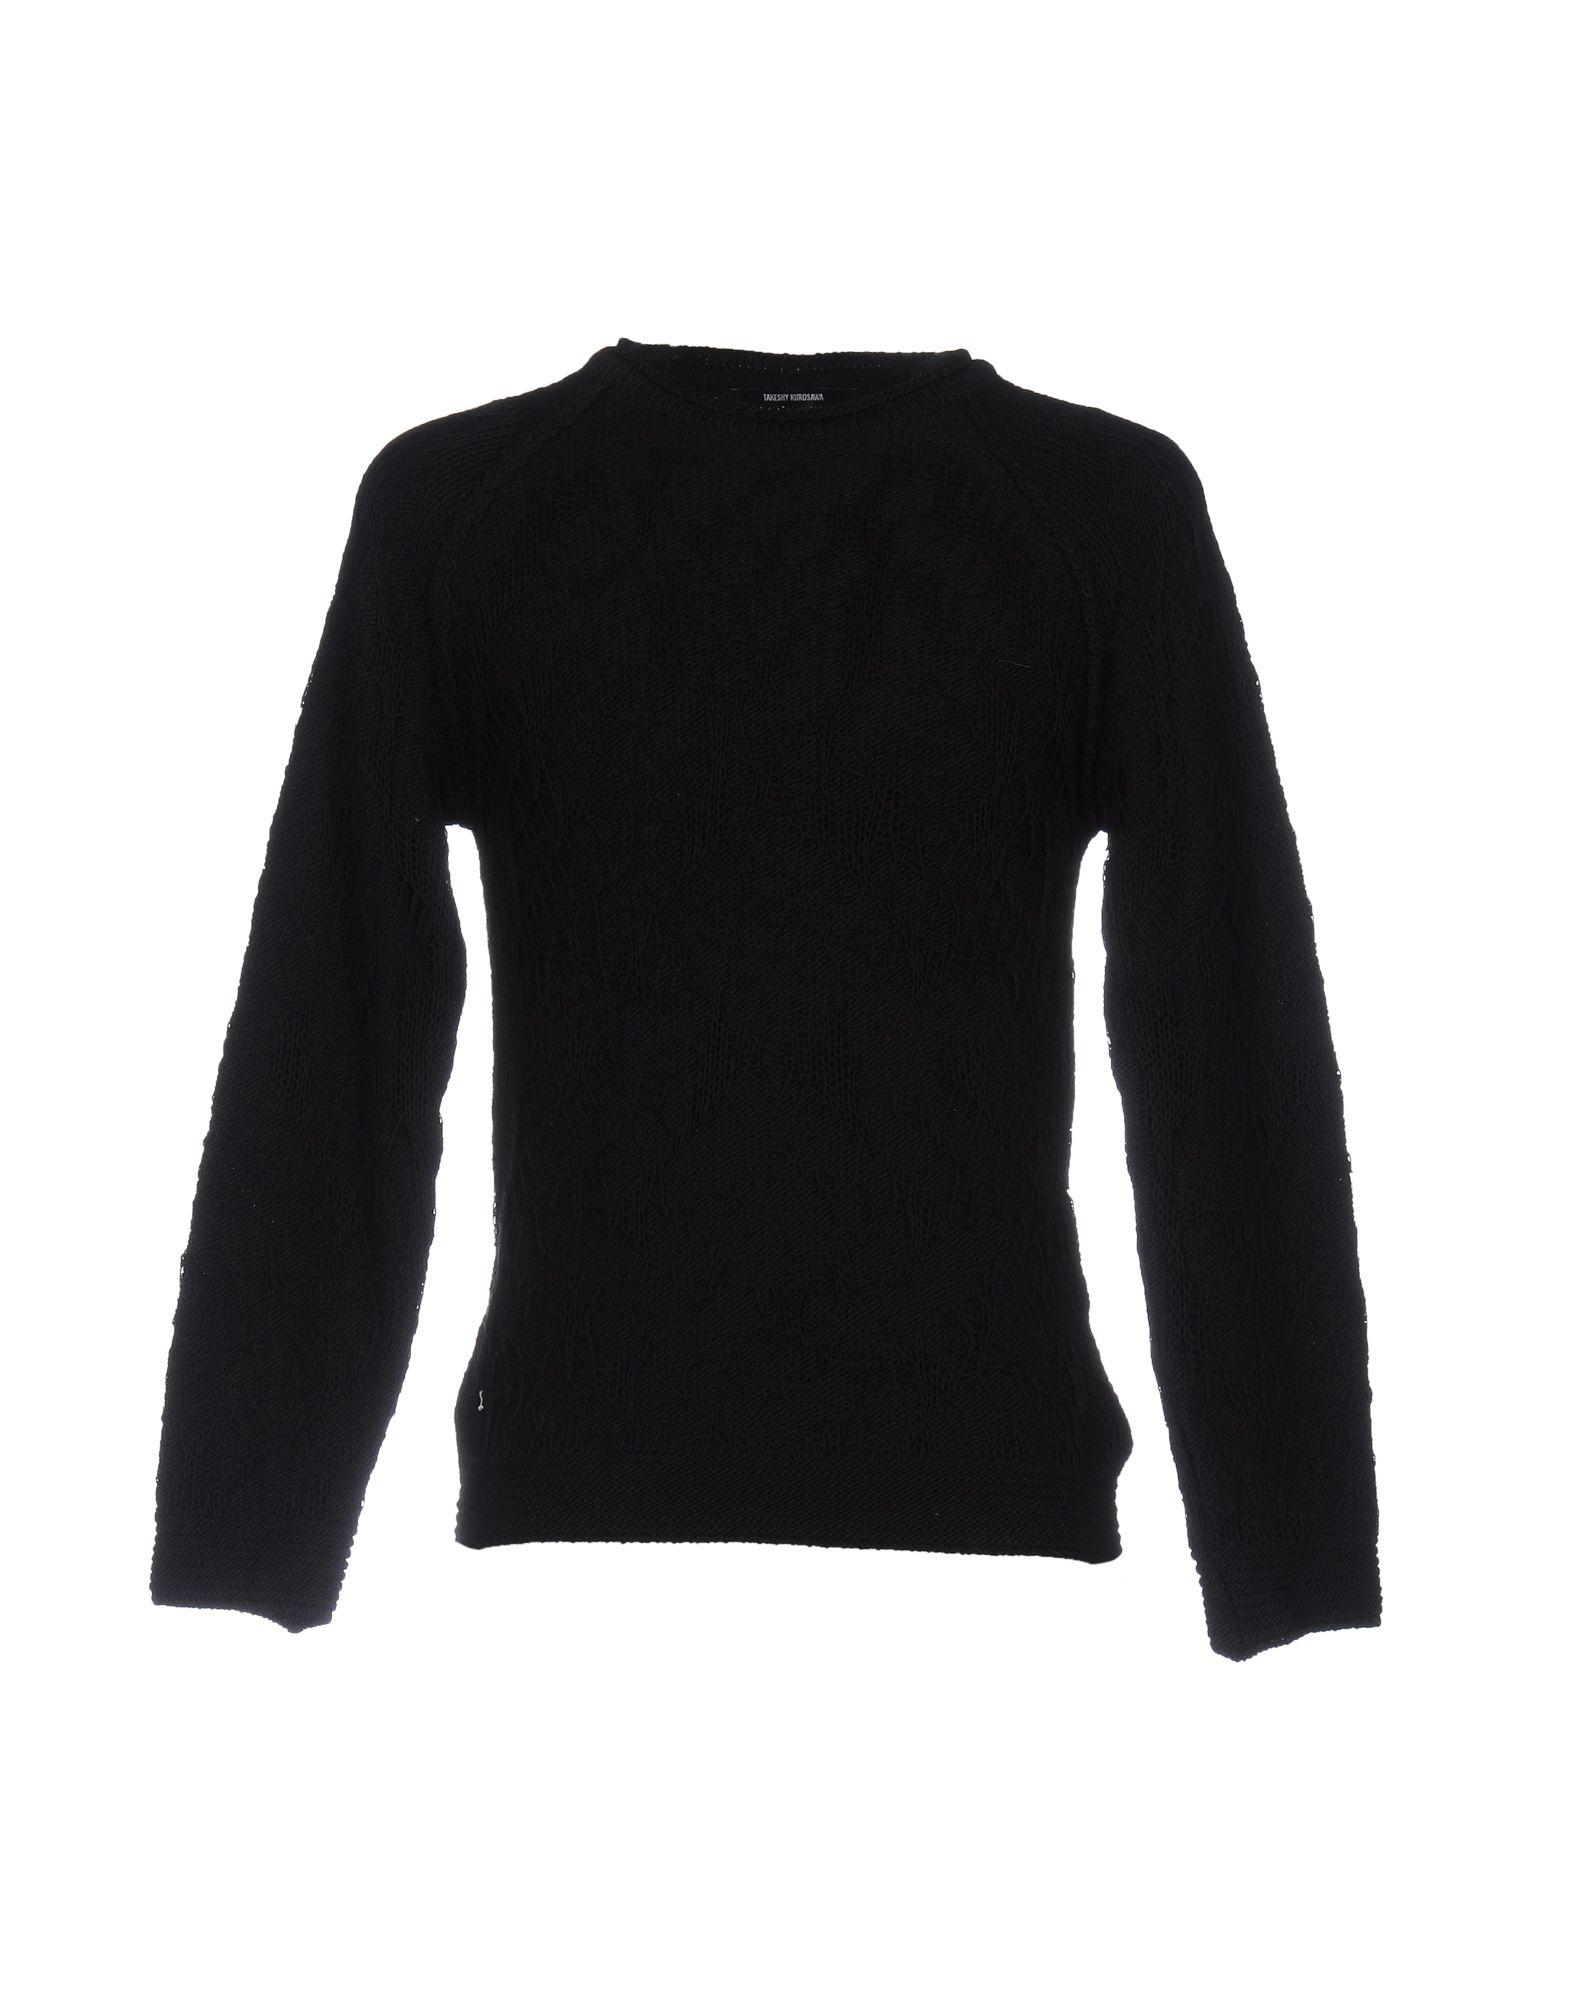 Best Place To Buy Online Marketable KNITWEAR - Jumpers Takeshy Kurosawa Outlet 2018 Unisex Outlet Fake ypbsT7ET